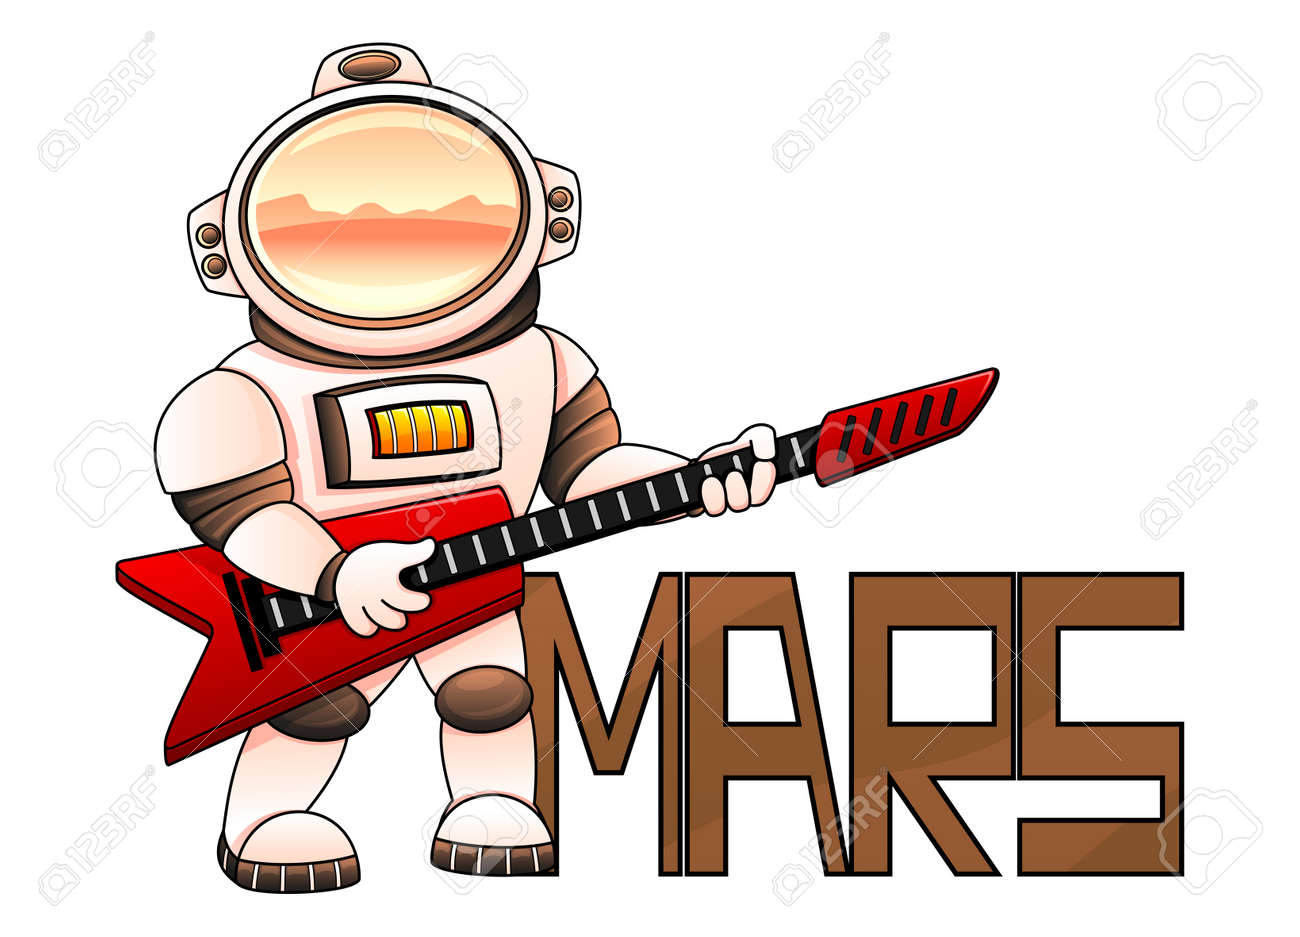 Astronaut with red guitar on white background. - 165358774